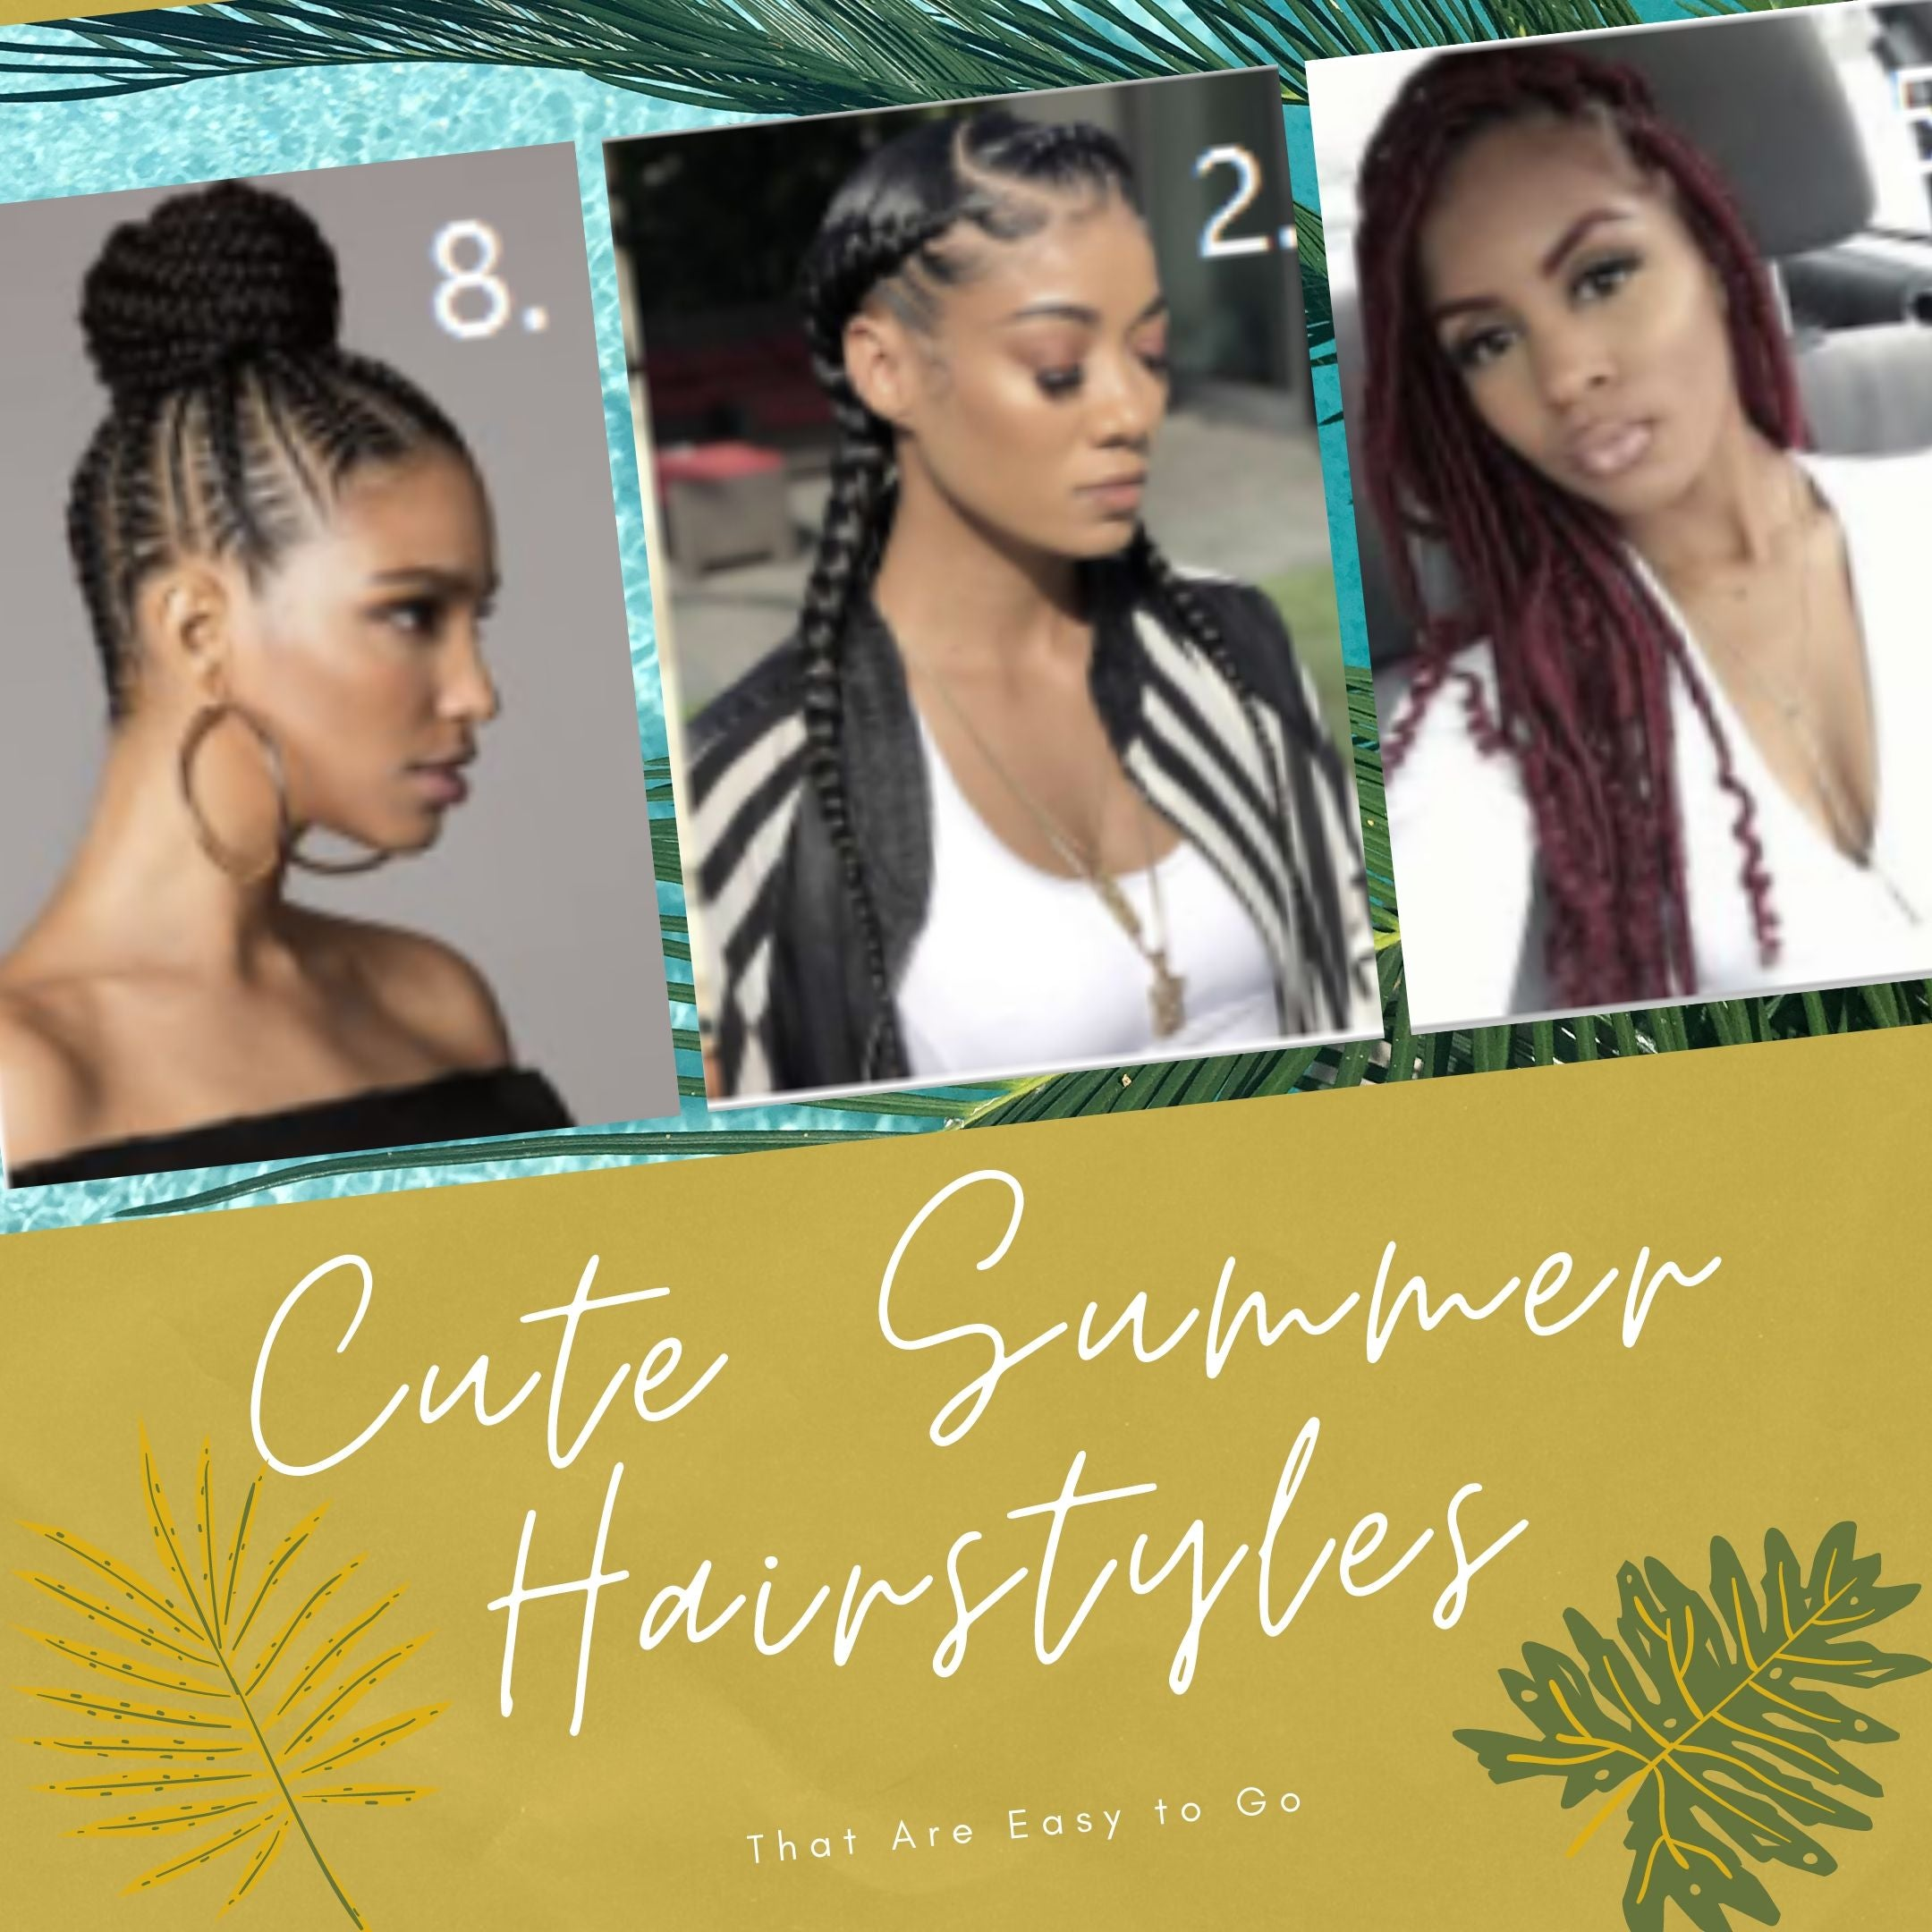 10 Cute Summer Hairstyles That Are Easy to Go